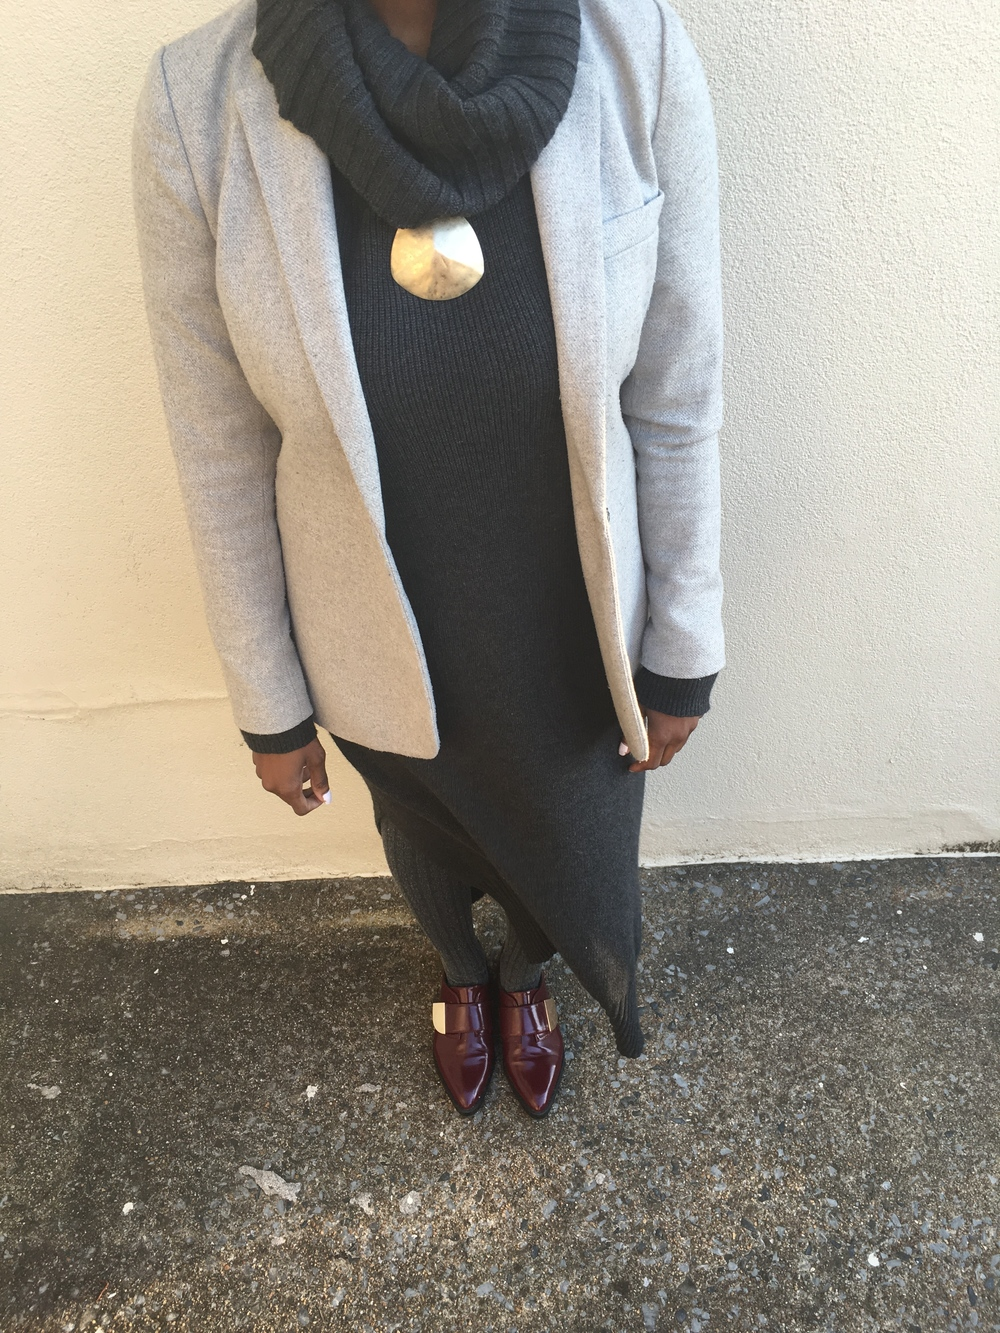 outfit deets - maxi dress: gifted c/o H&M (here) ; shoes: Aldo (here) ; blazer: Banana Republic (here) ; necklace: thrifted c/o Goodwill (here)